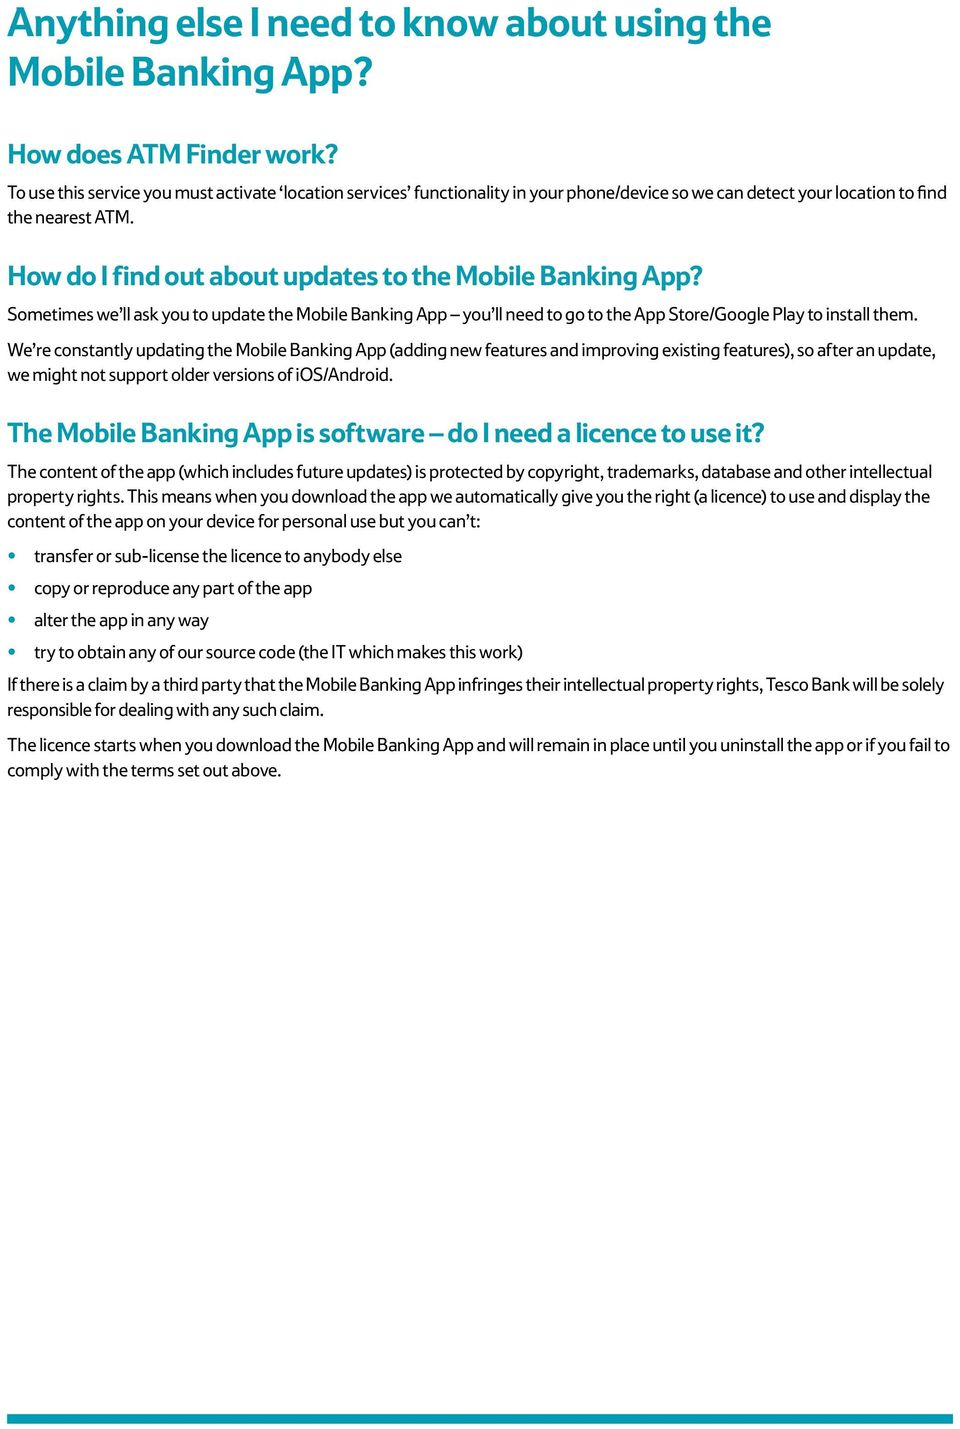 How do I find out about updates to the Mobile Banking App? Sometimes we ll ask you to update the Mobile Banking App you ll need to go to the App Store/Google Play to install them.